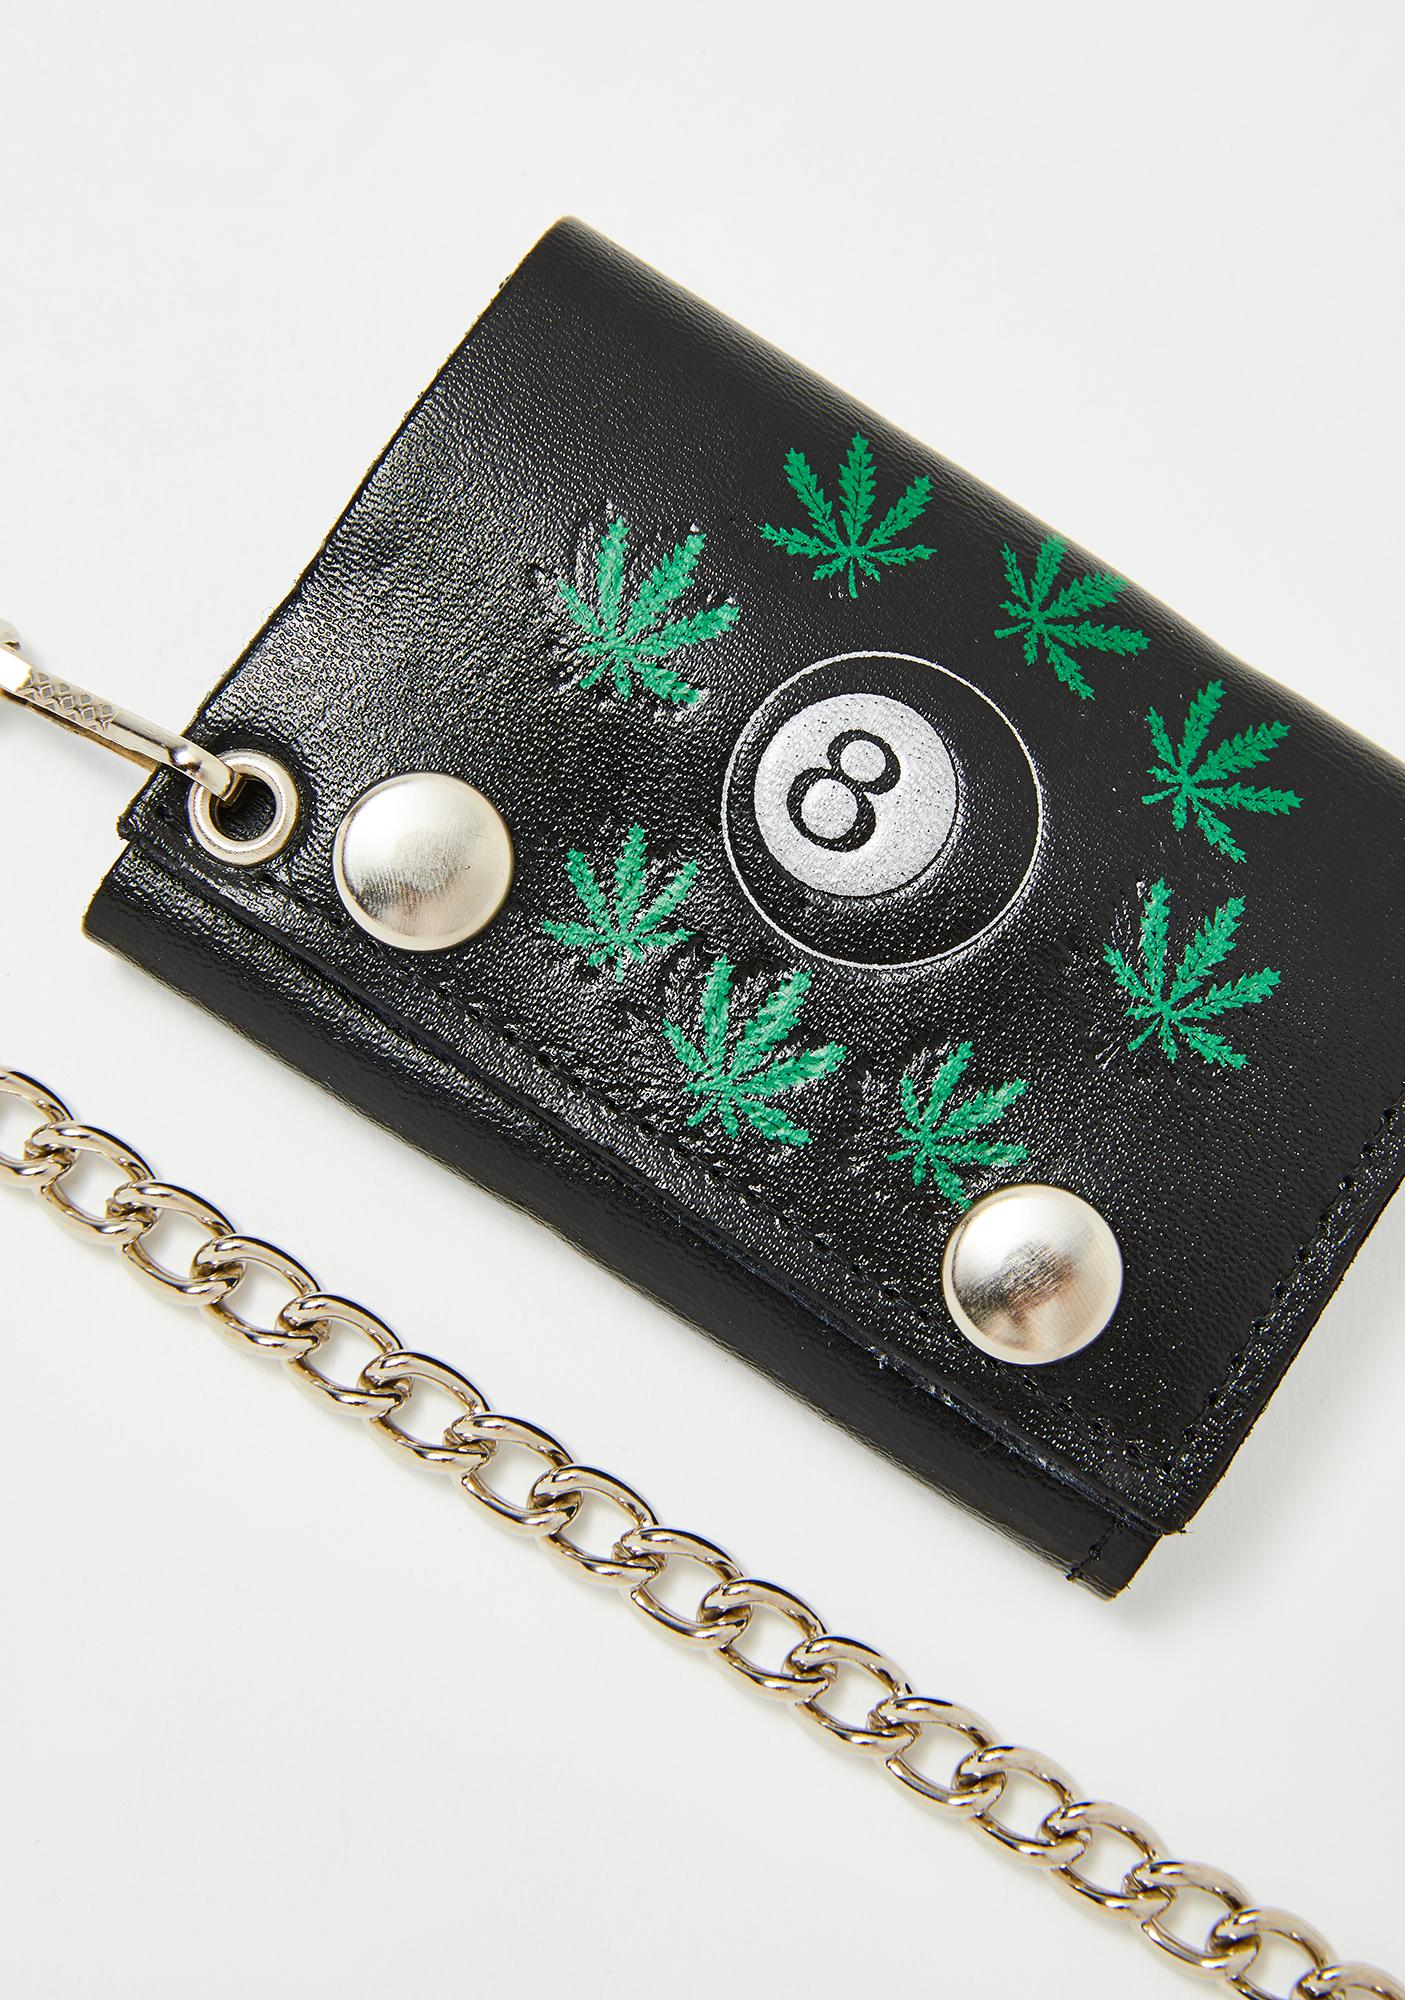 The Cobra Snake Weed & 8 Ball Chain Wallet